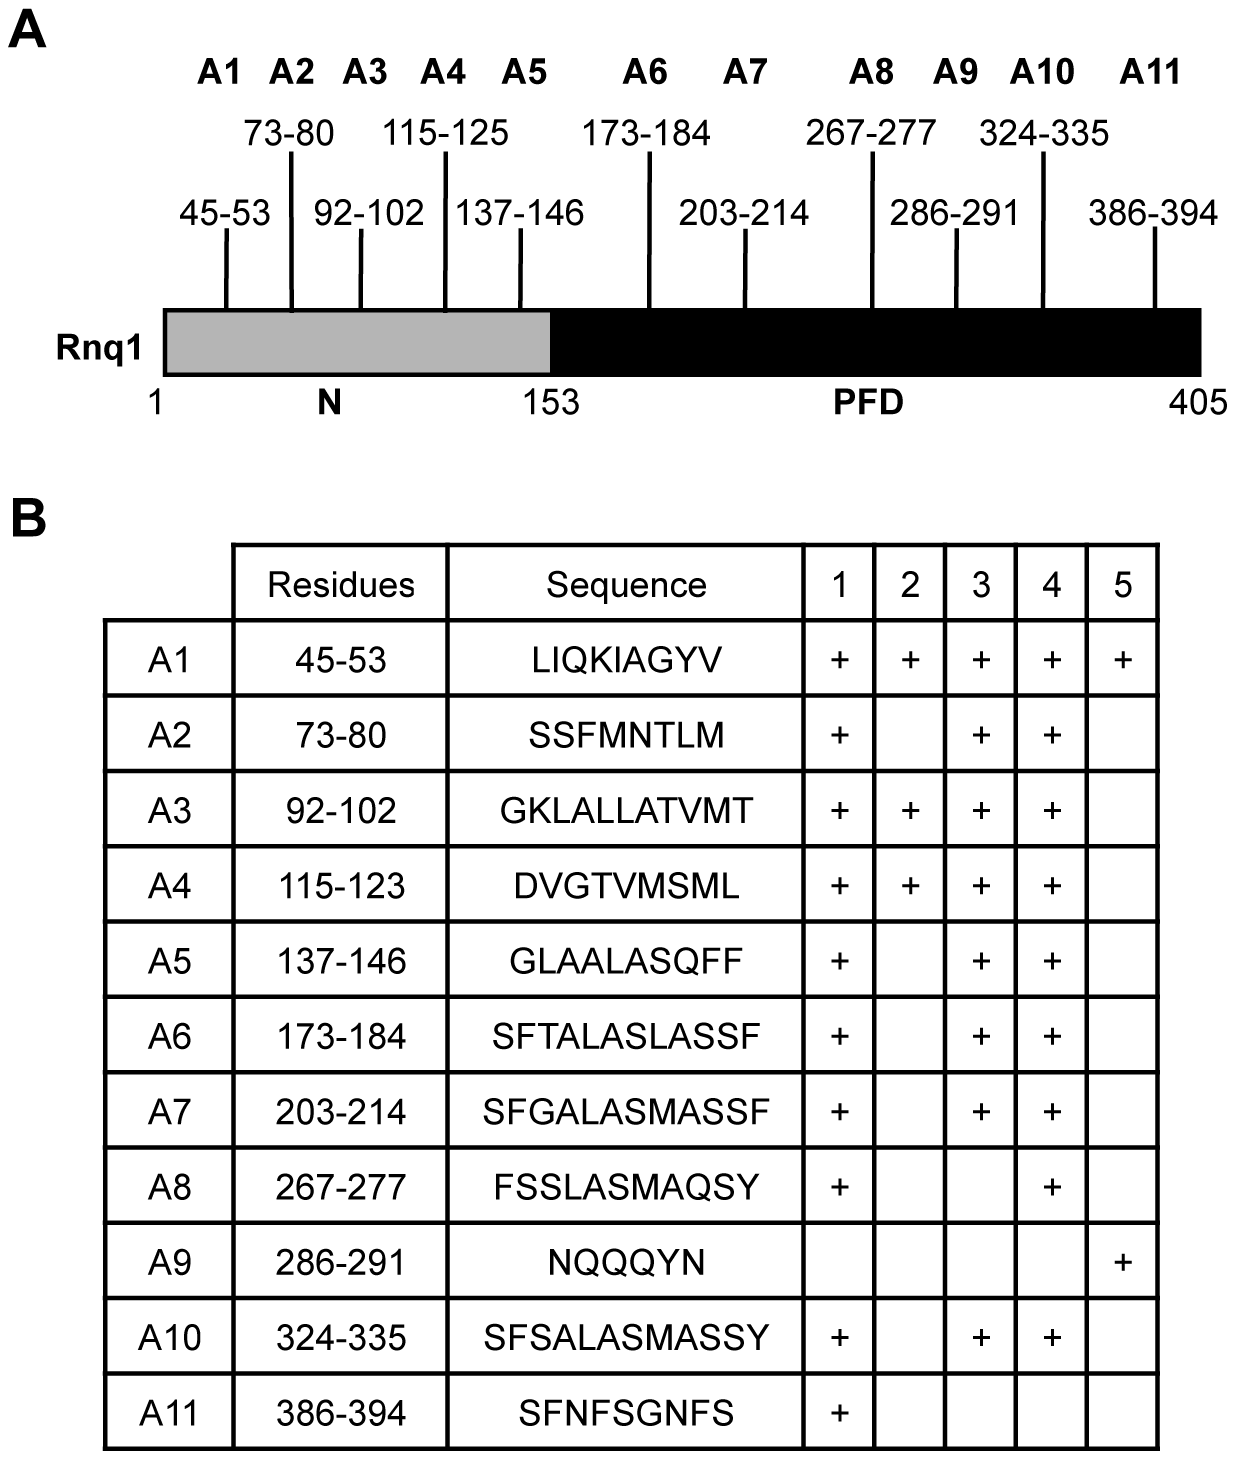 Consensus amyloidogenic regions of Rnq1 identified by prediction algorithms.